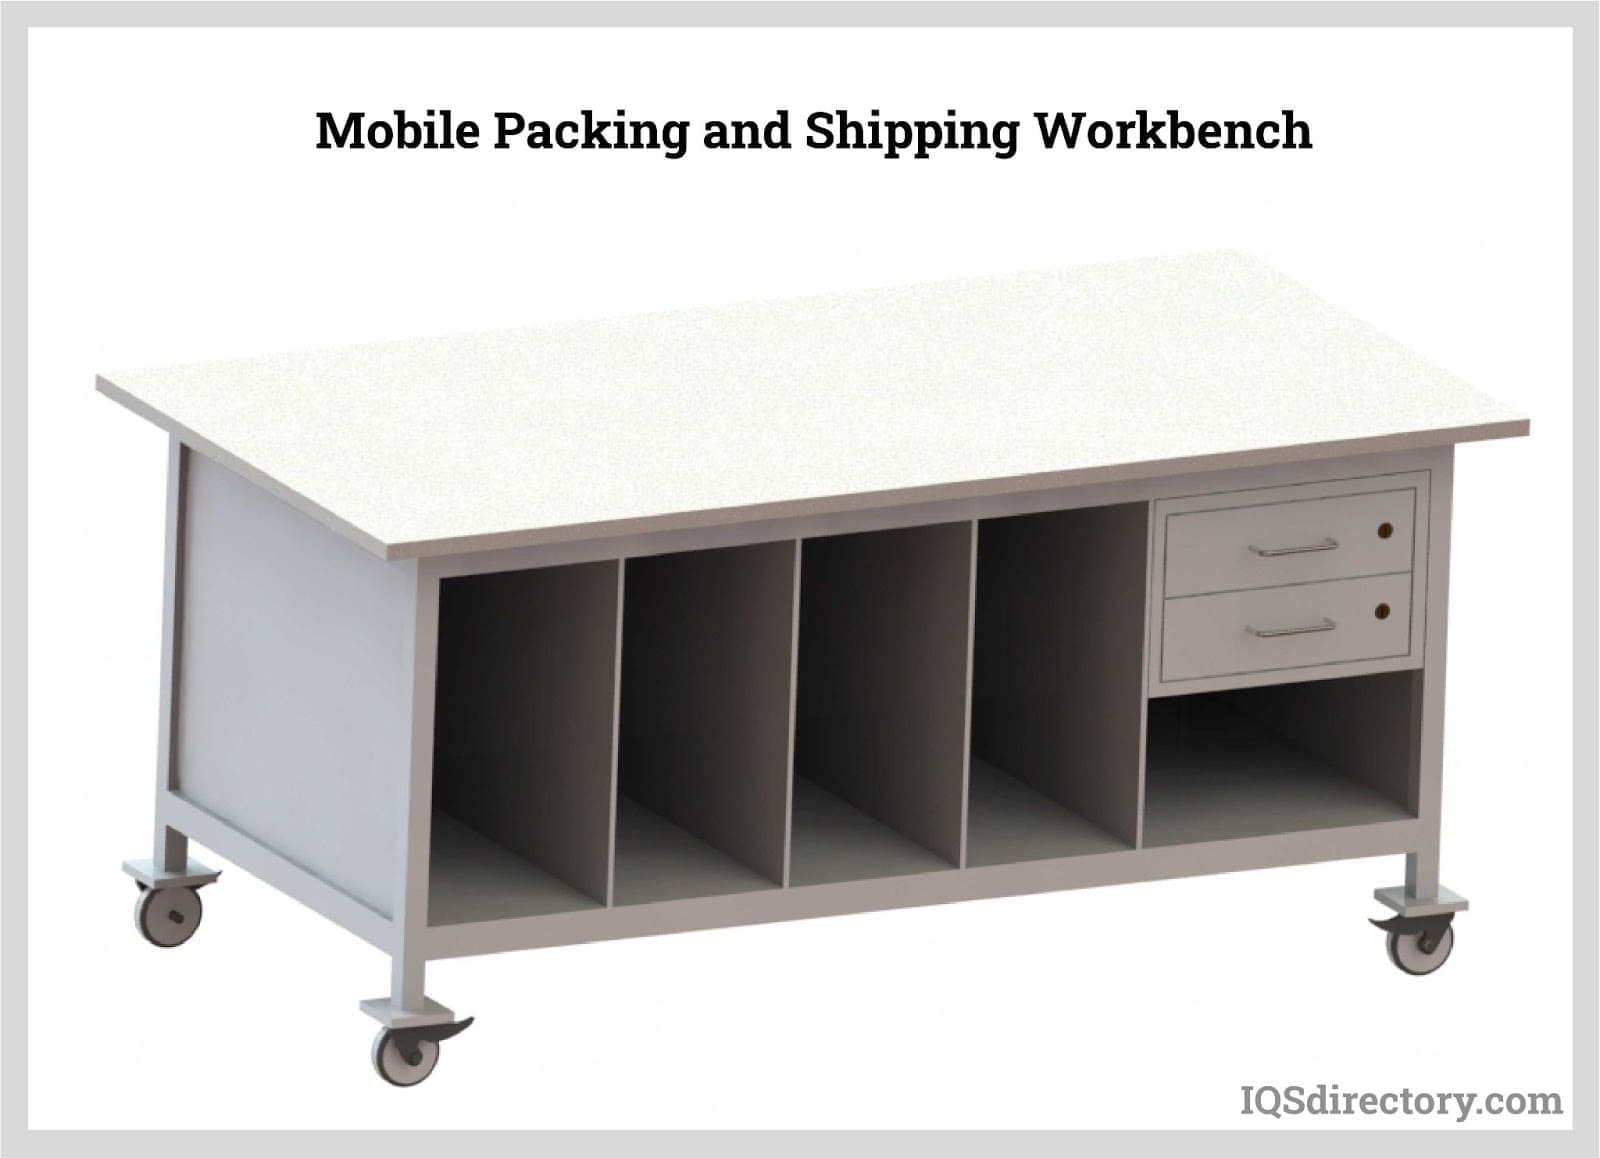 Mobile Packing and Shipping Workbench